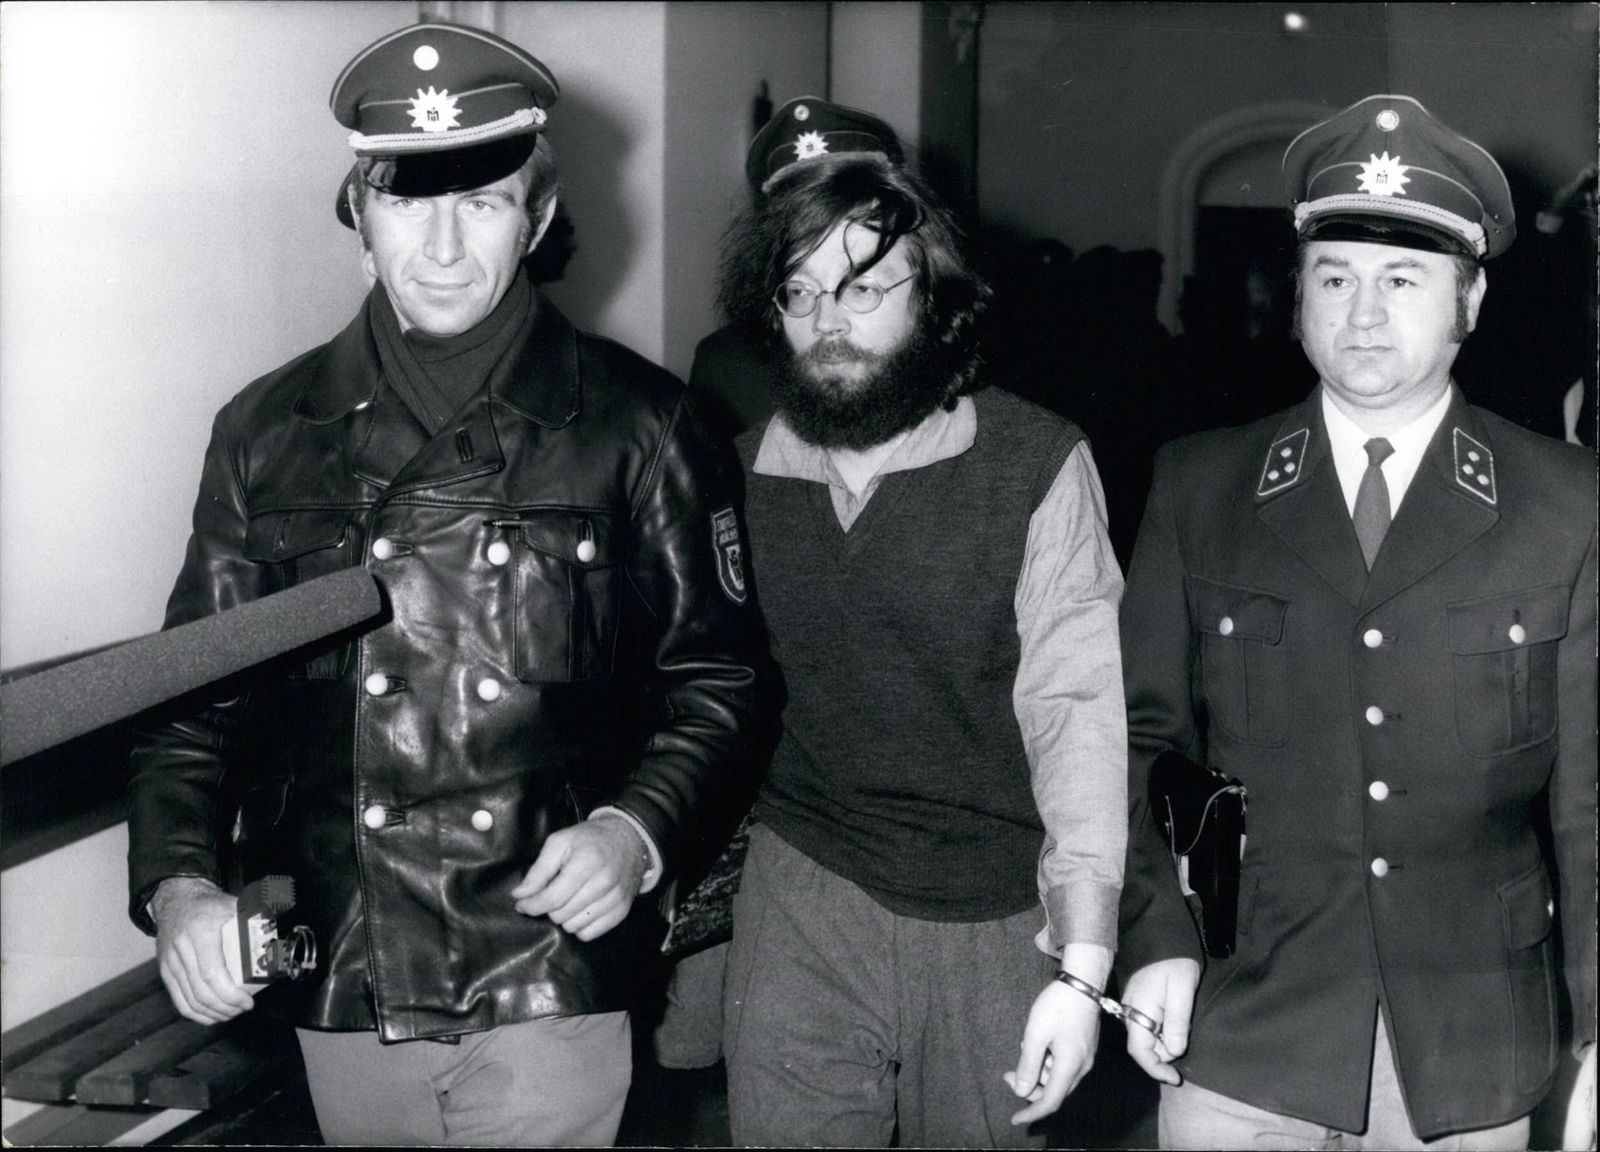 Attentat ju?dische Gemeinde 1970 - Jan 01 1971 The German Fritz Teufel again on trial On January 5th 1971 Fritz Teufel is again o